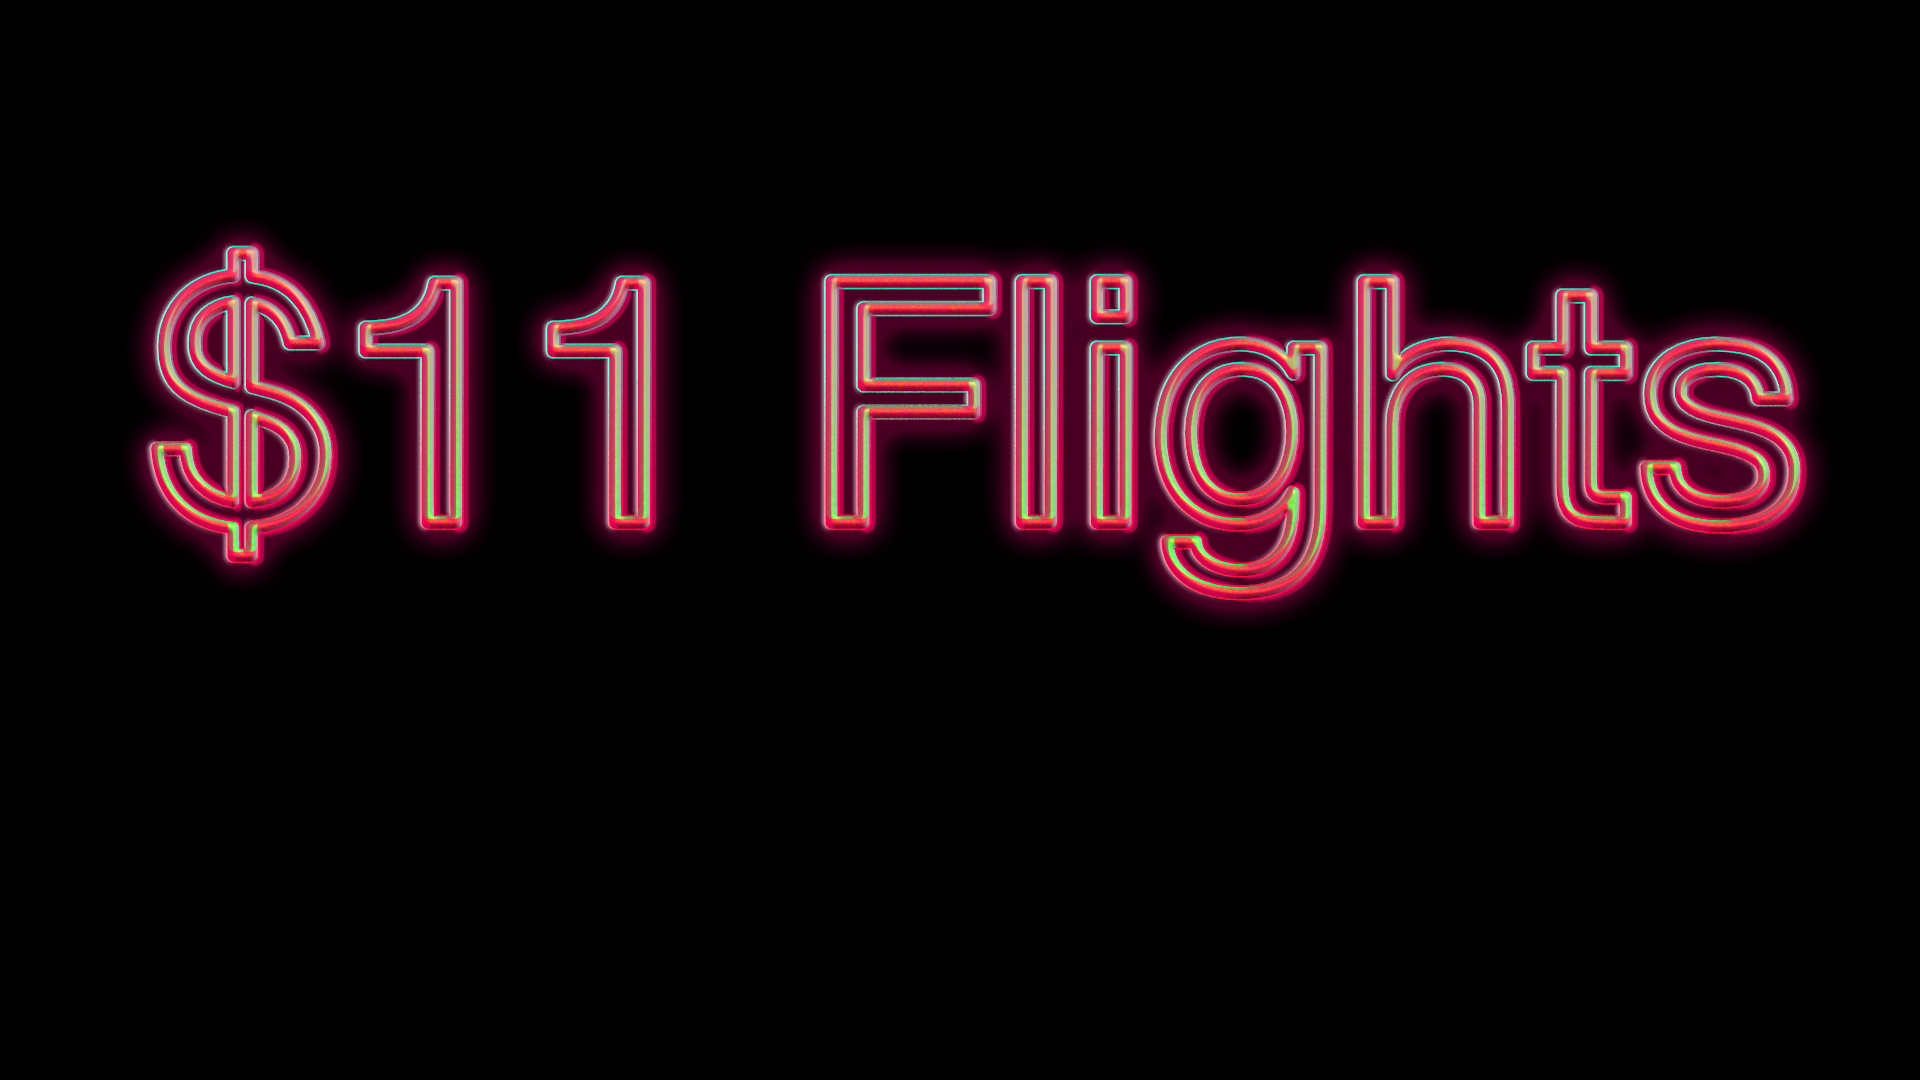 $11 flights - book the cheapest international flight in the world